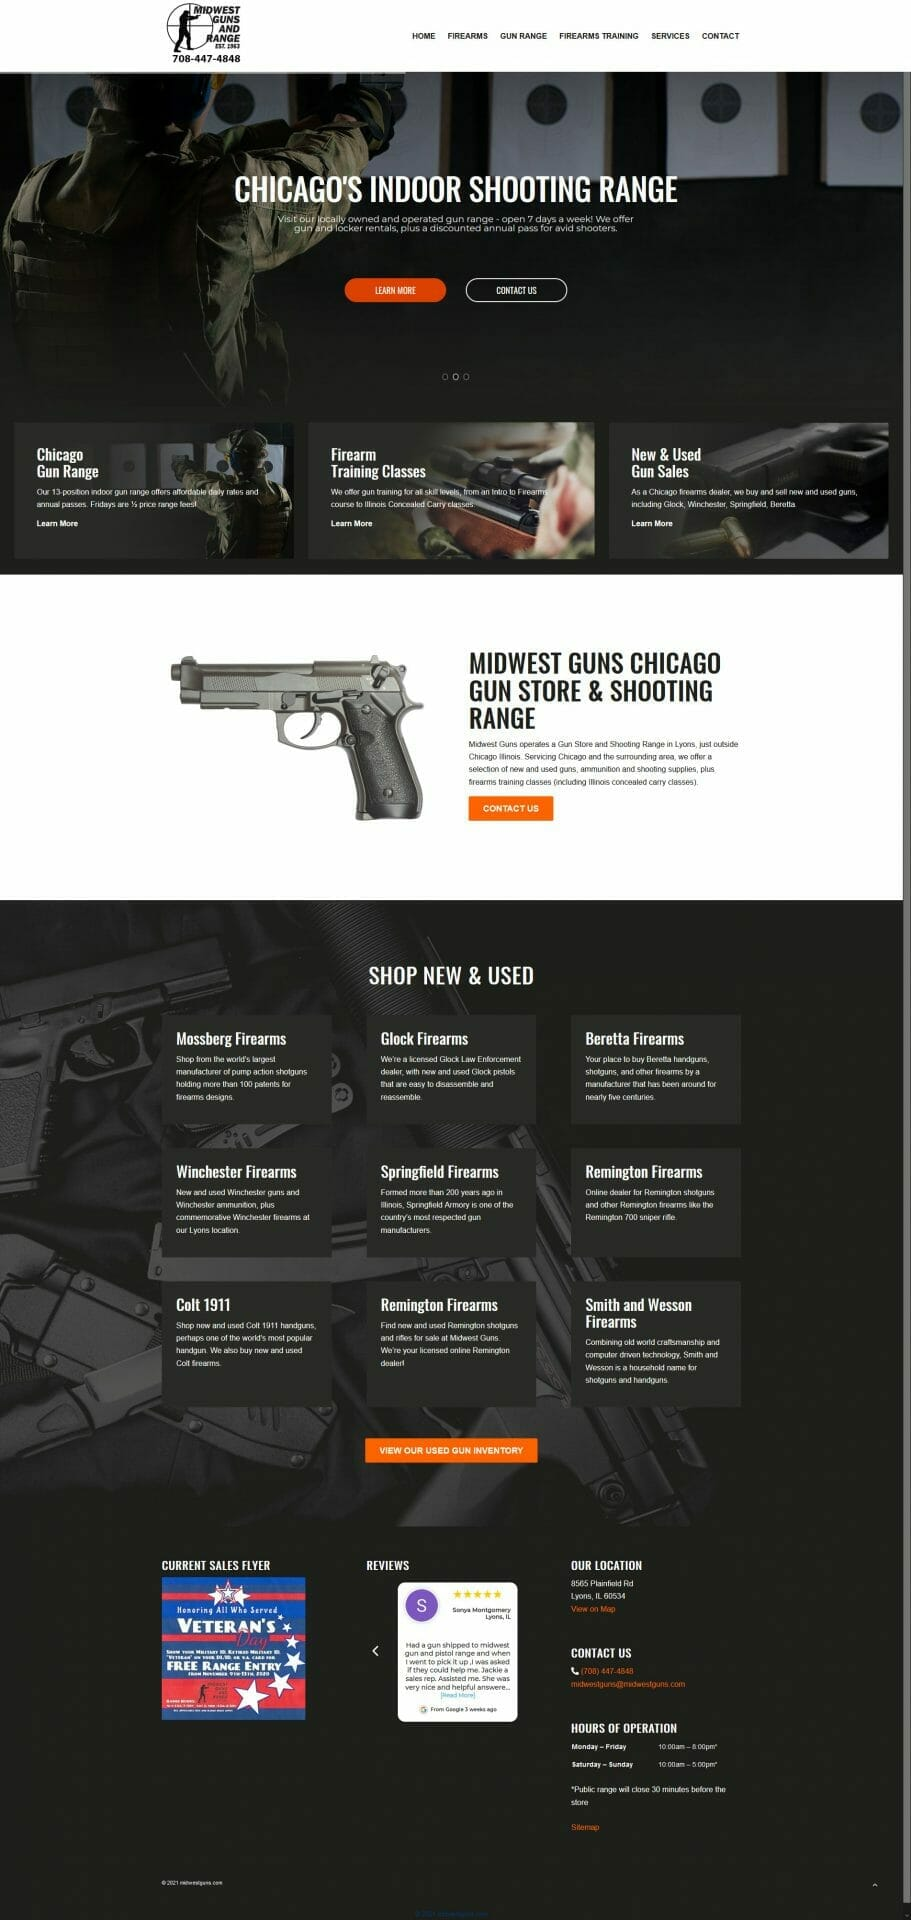 Images & text for Midwest Guns Chicago gun store and shooting range